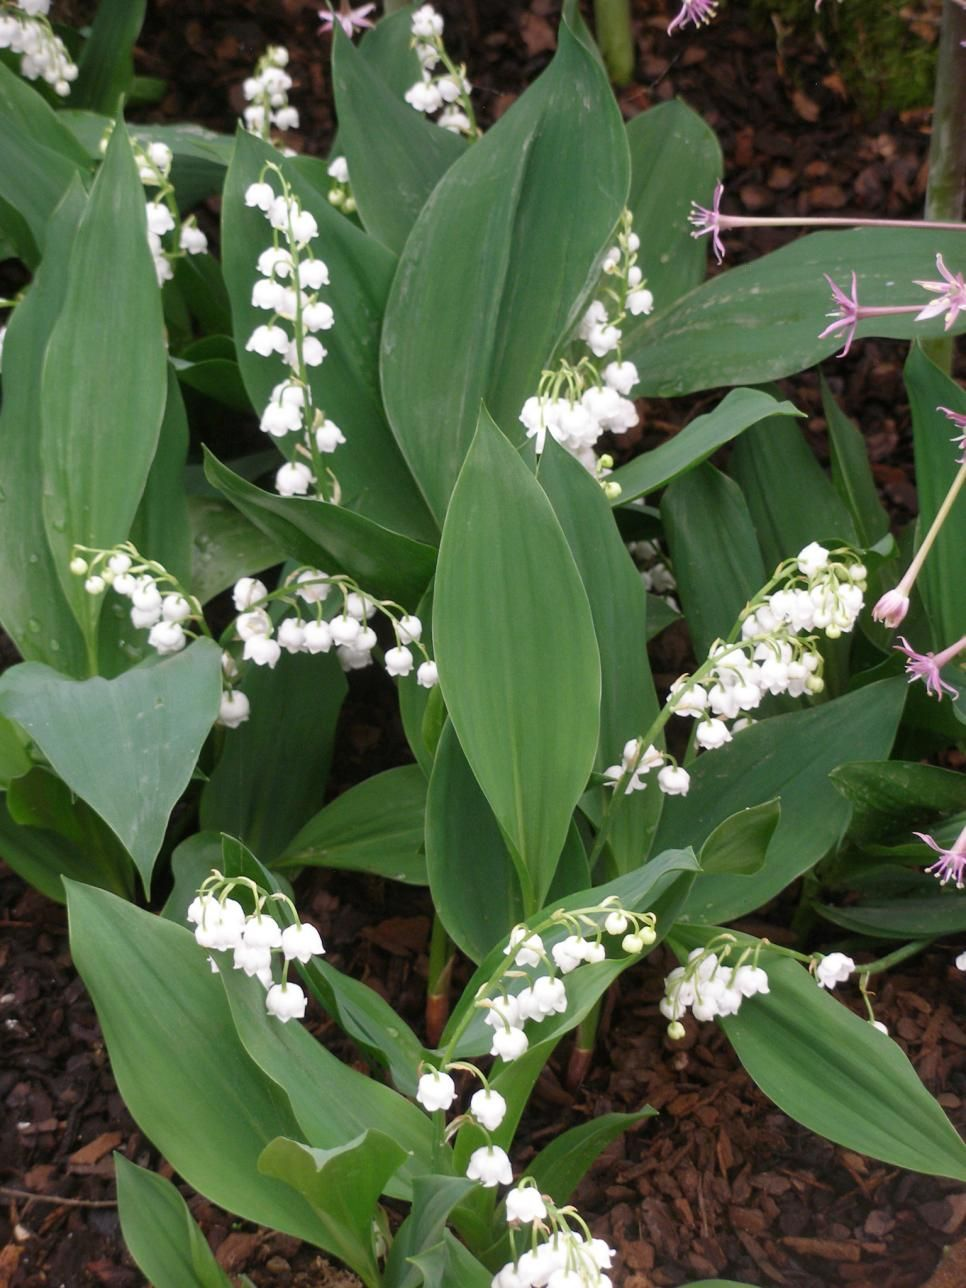 Perennial plants for winter spring perennial flowers pinterest the bold colors and leaves on these perennials will take you from the chill of winter to the sunshine of spring mightylinksfo